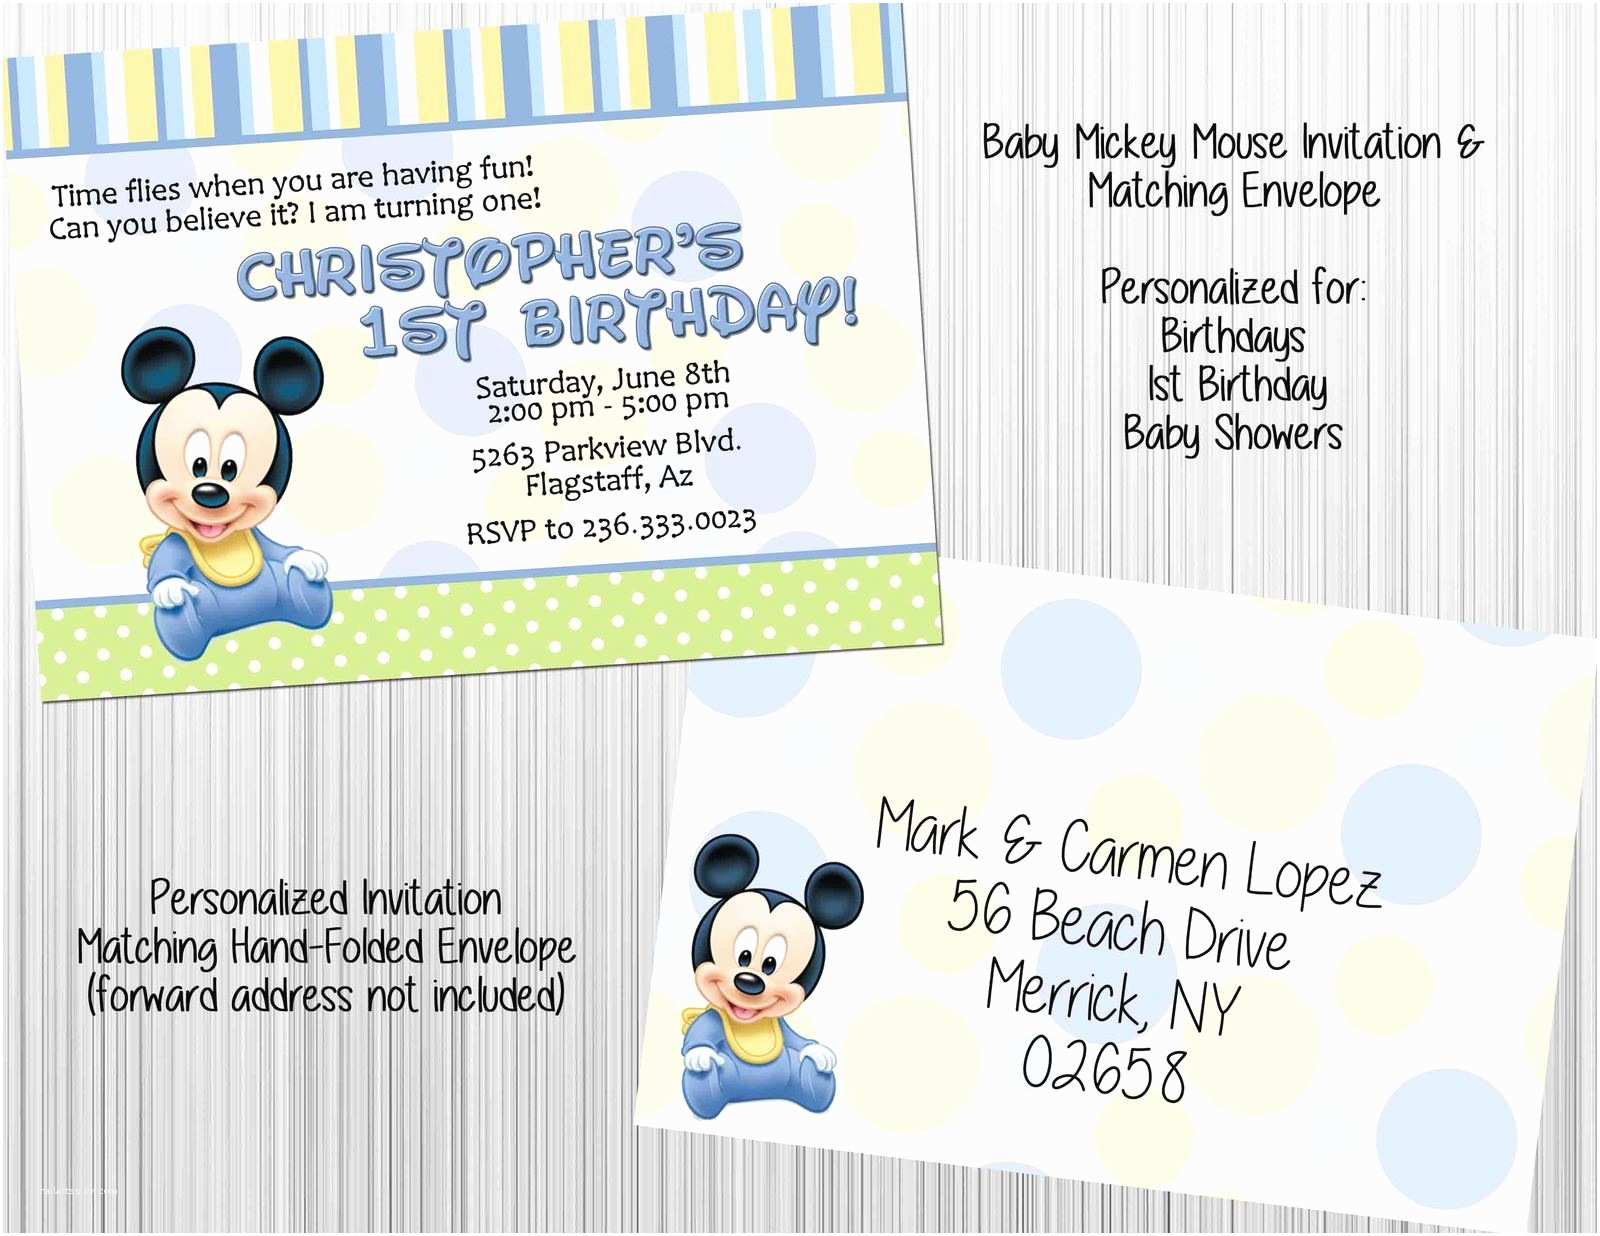 Mickey Mouse Baby Shower Invitations Baby Mickey Mouse Invitation Set Envelopes Birthday